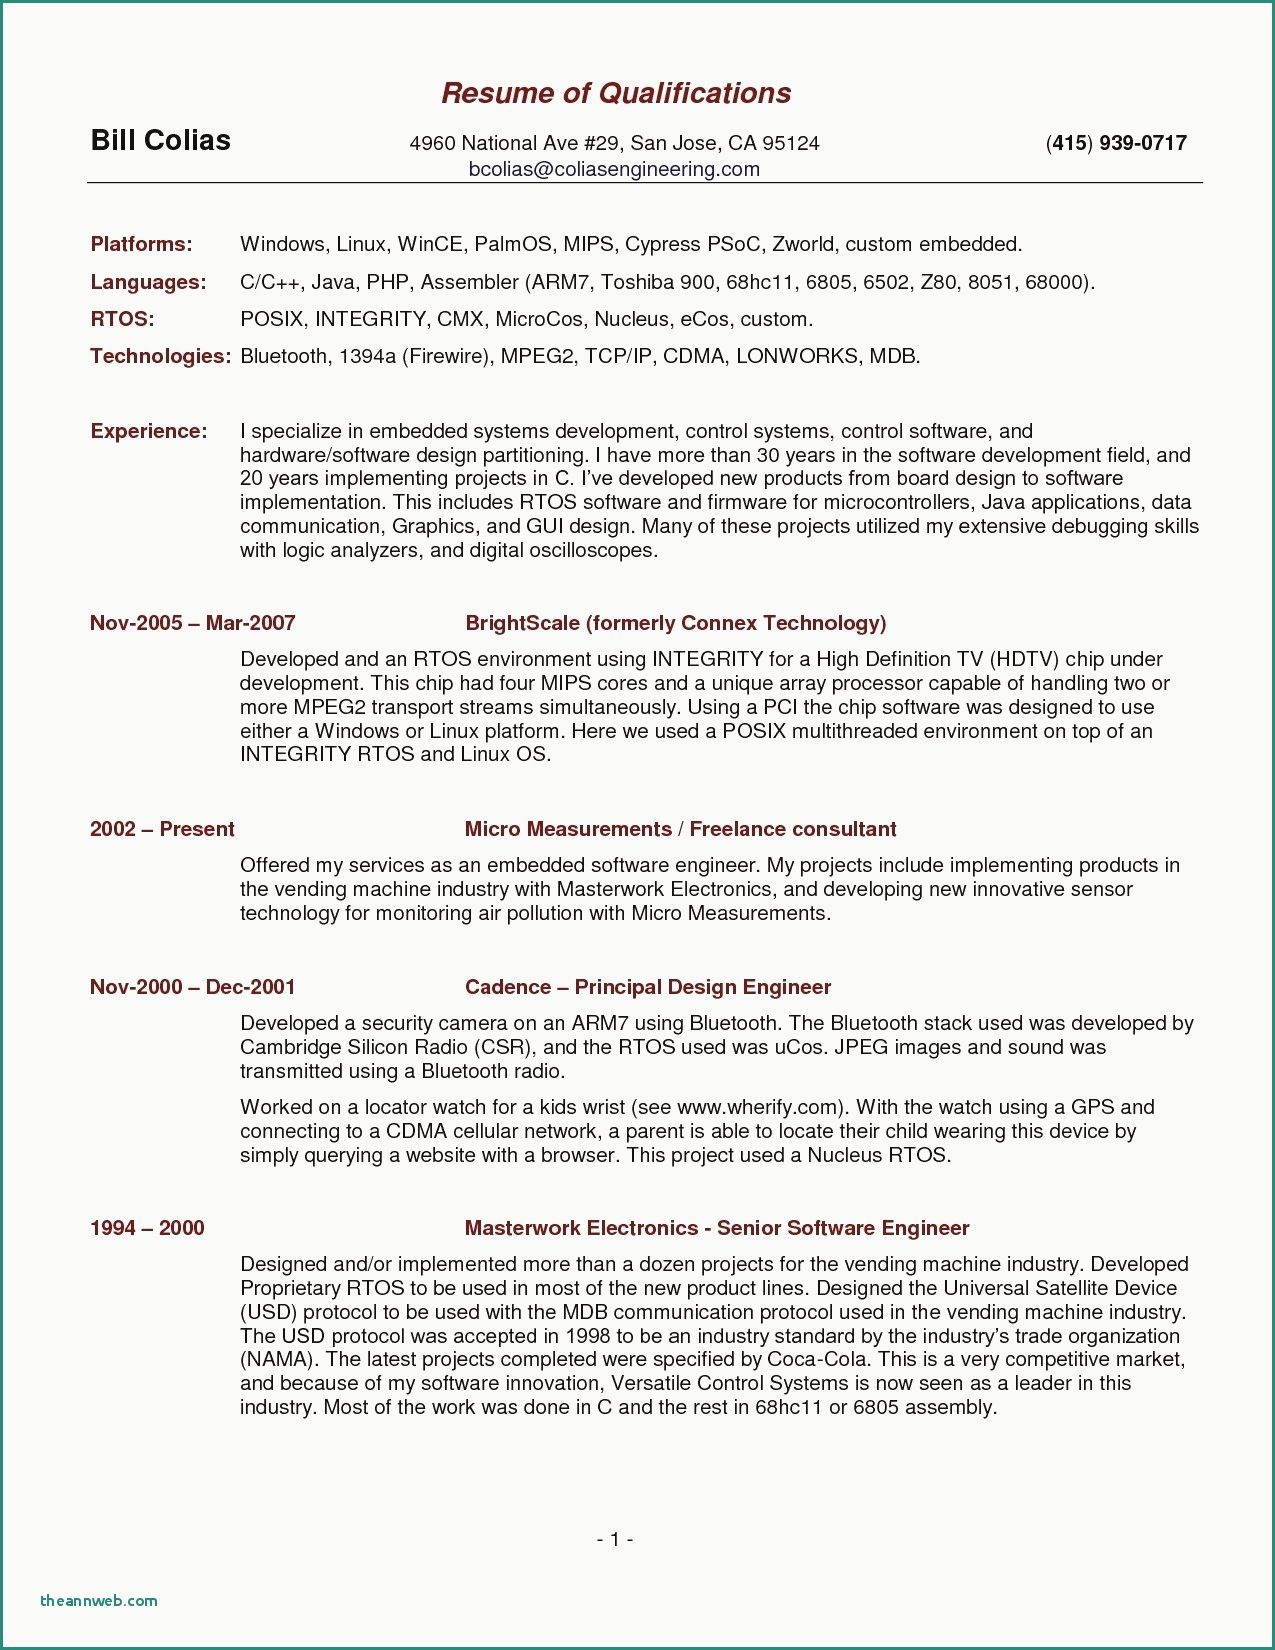 76 Cool Gallery Of Resume Examples Ubc Check More At Https Www Ourpetscrawley Com 76 Cool Gallery Of Resume Examples Ubc